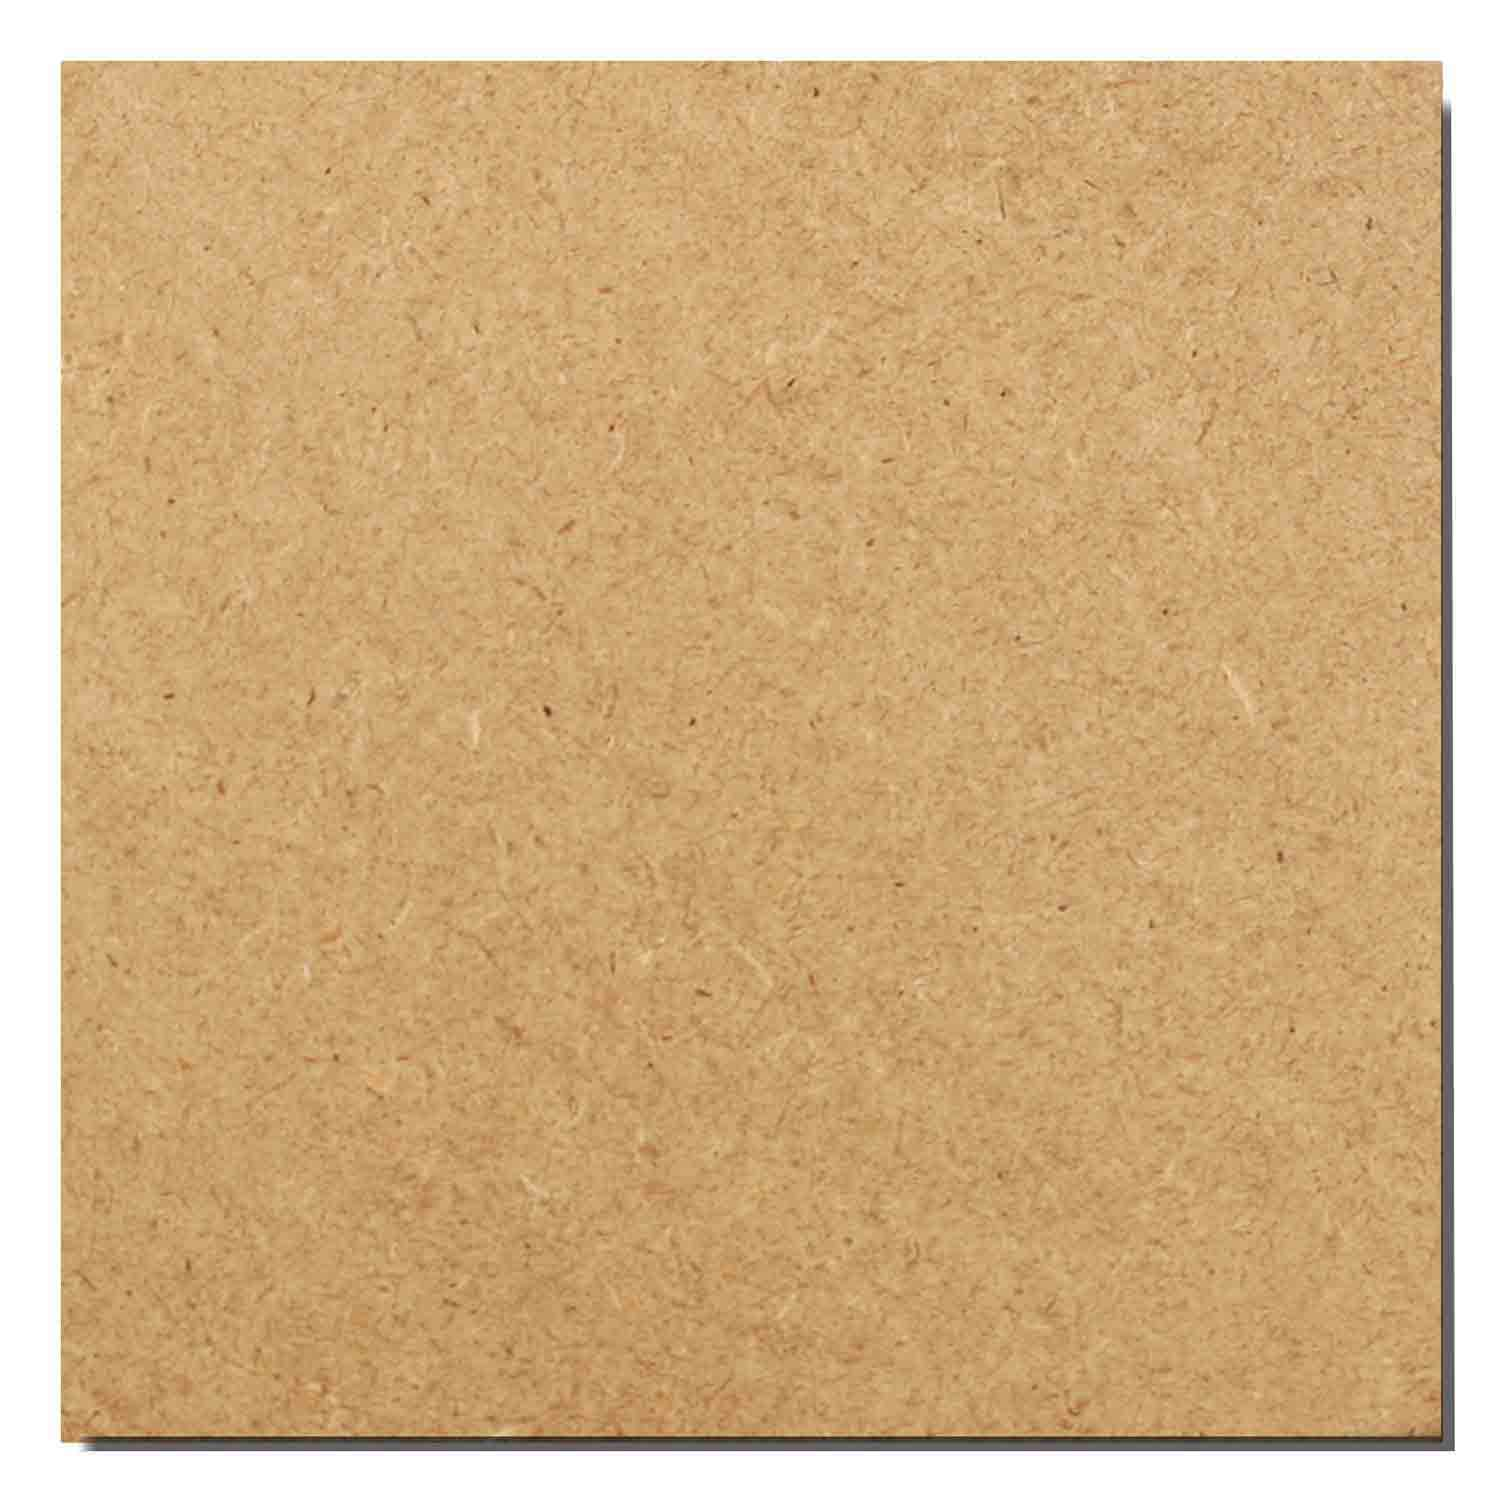 "12"" Square Masonite Cake Board"